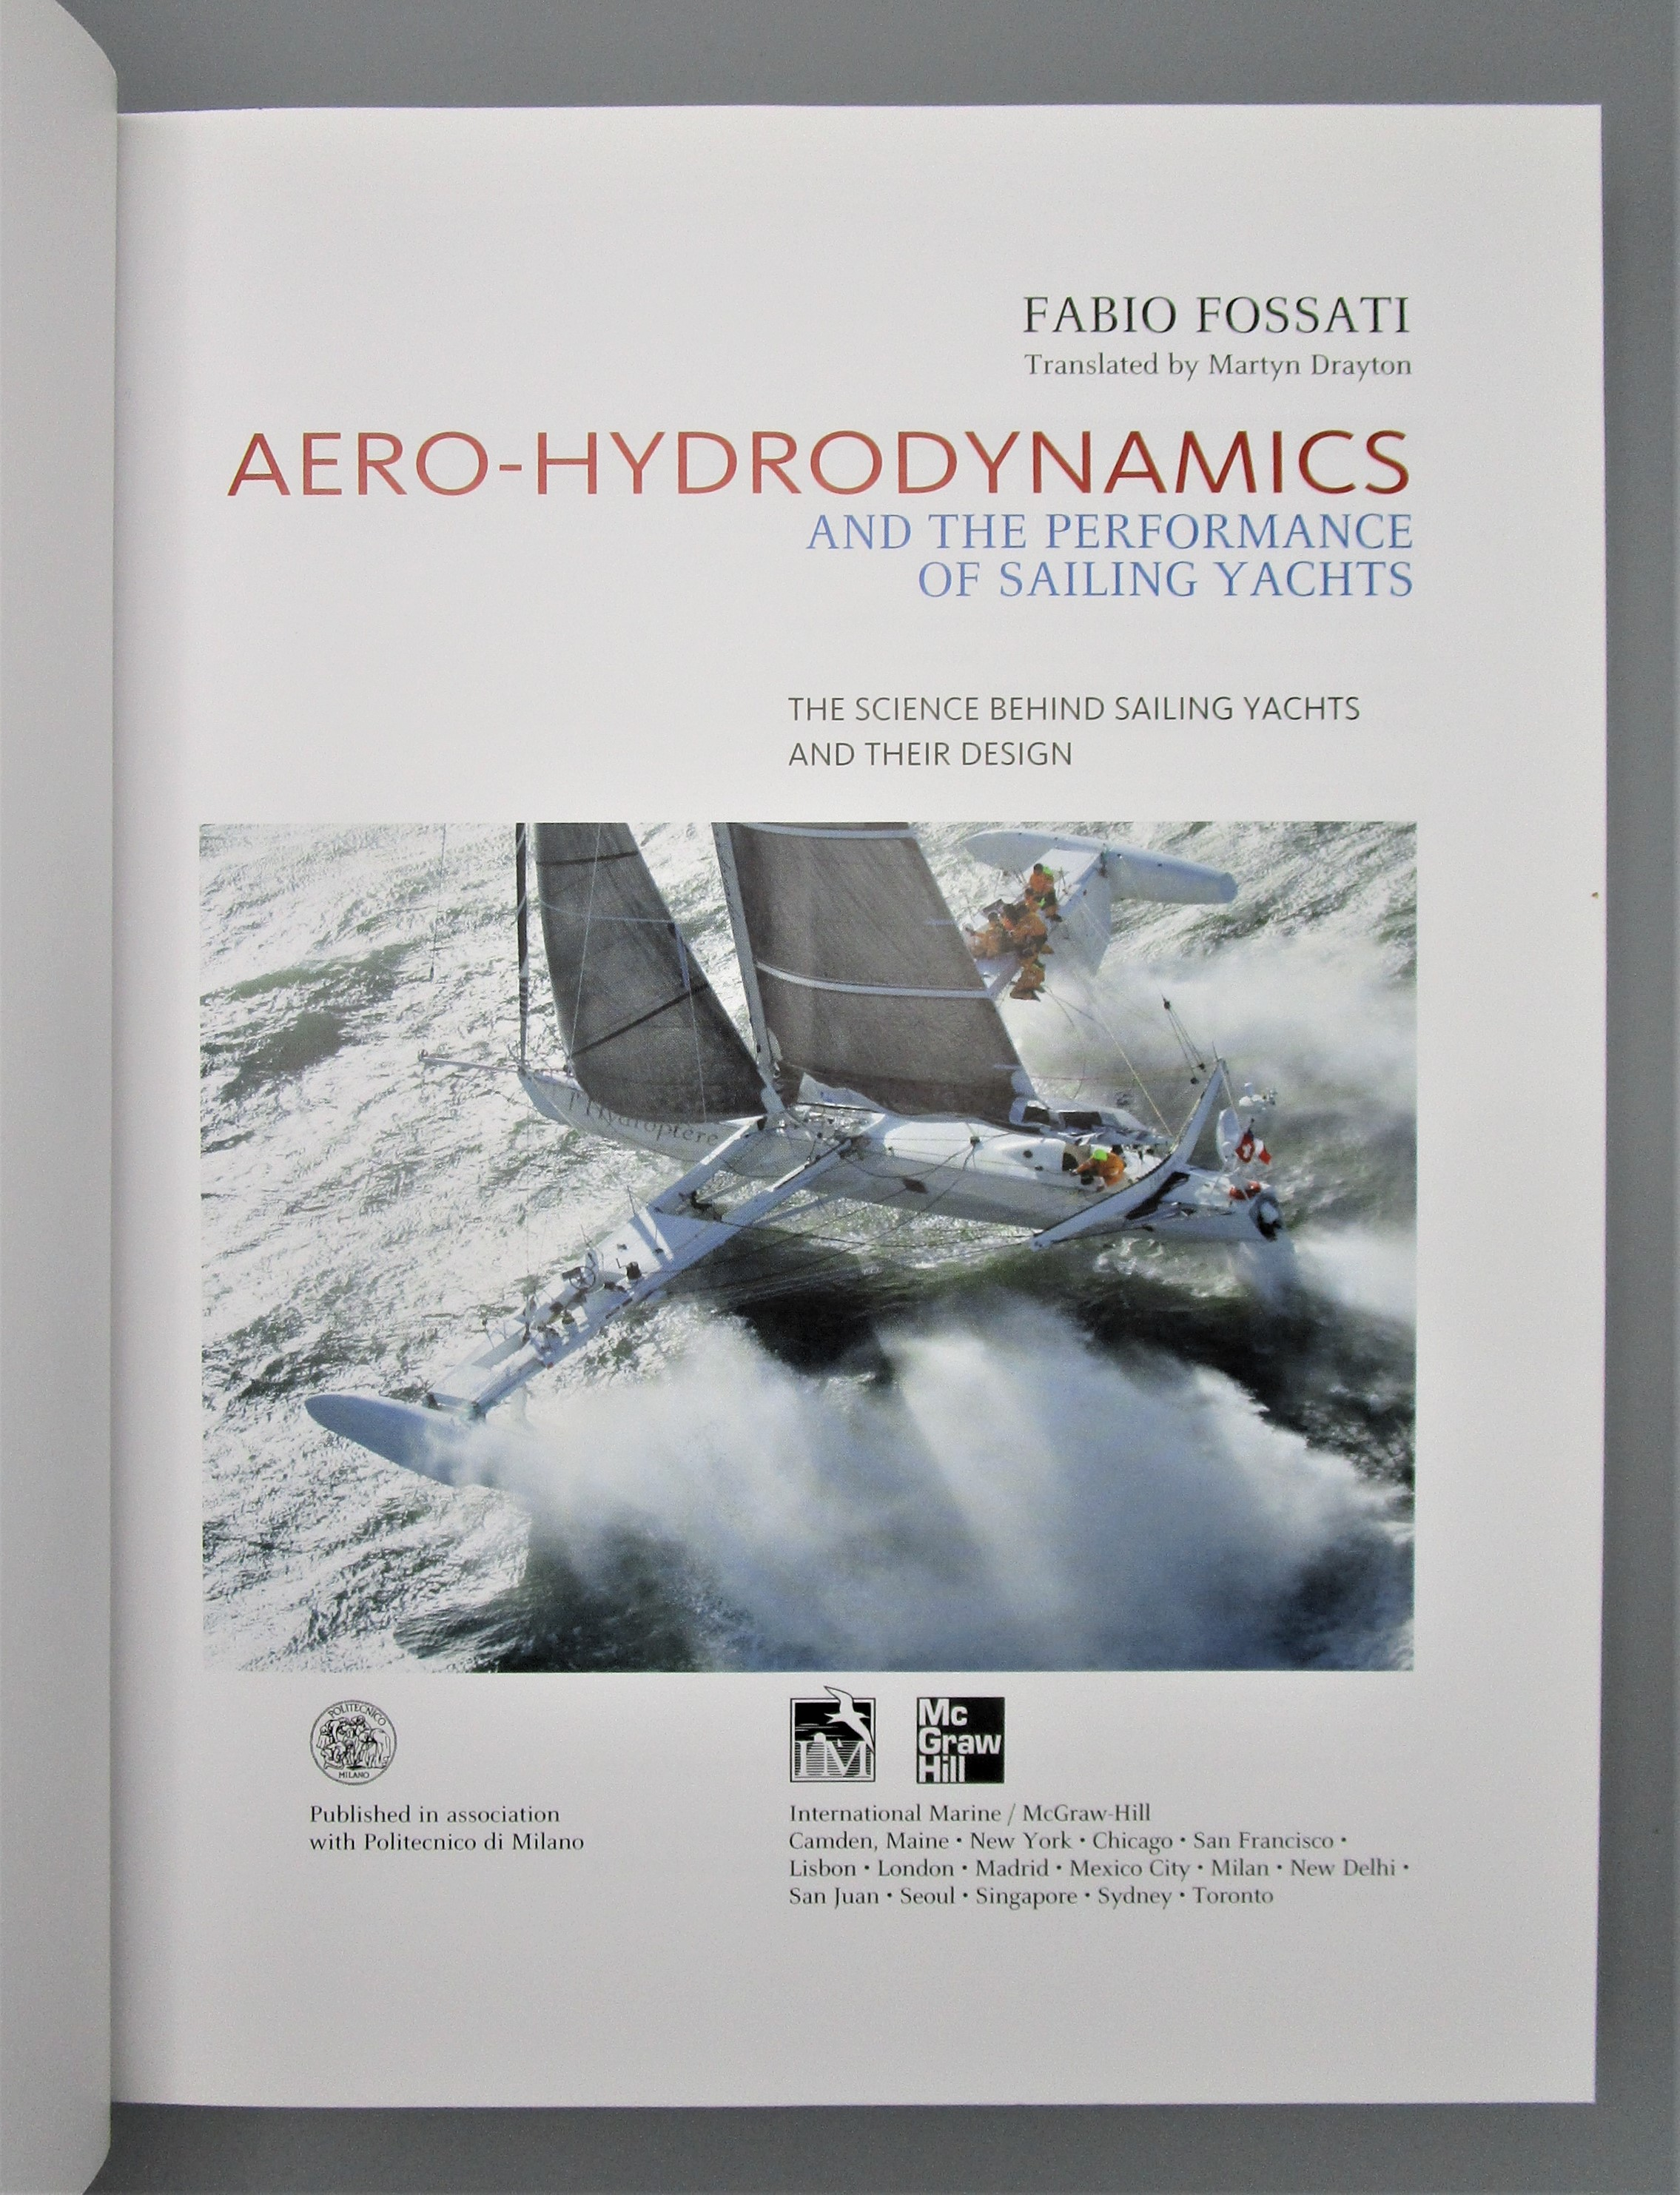 AERO-HYDRODYNAMICS AND THE PERFORMANCE OF SAILING YACHTS, by Fabio Fossati - 2009